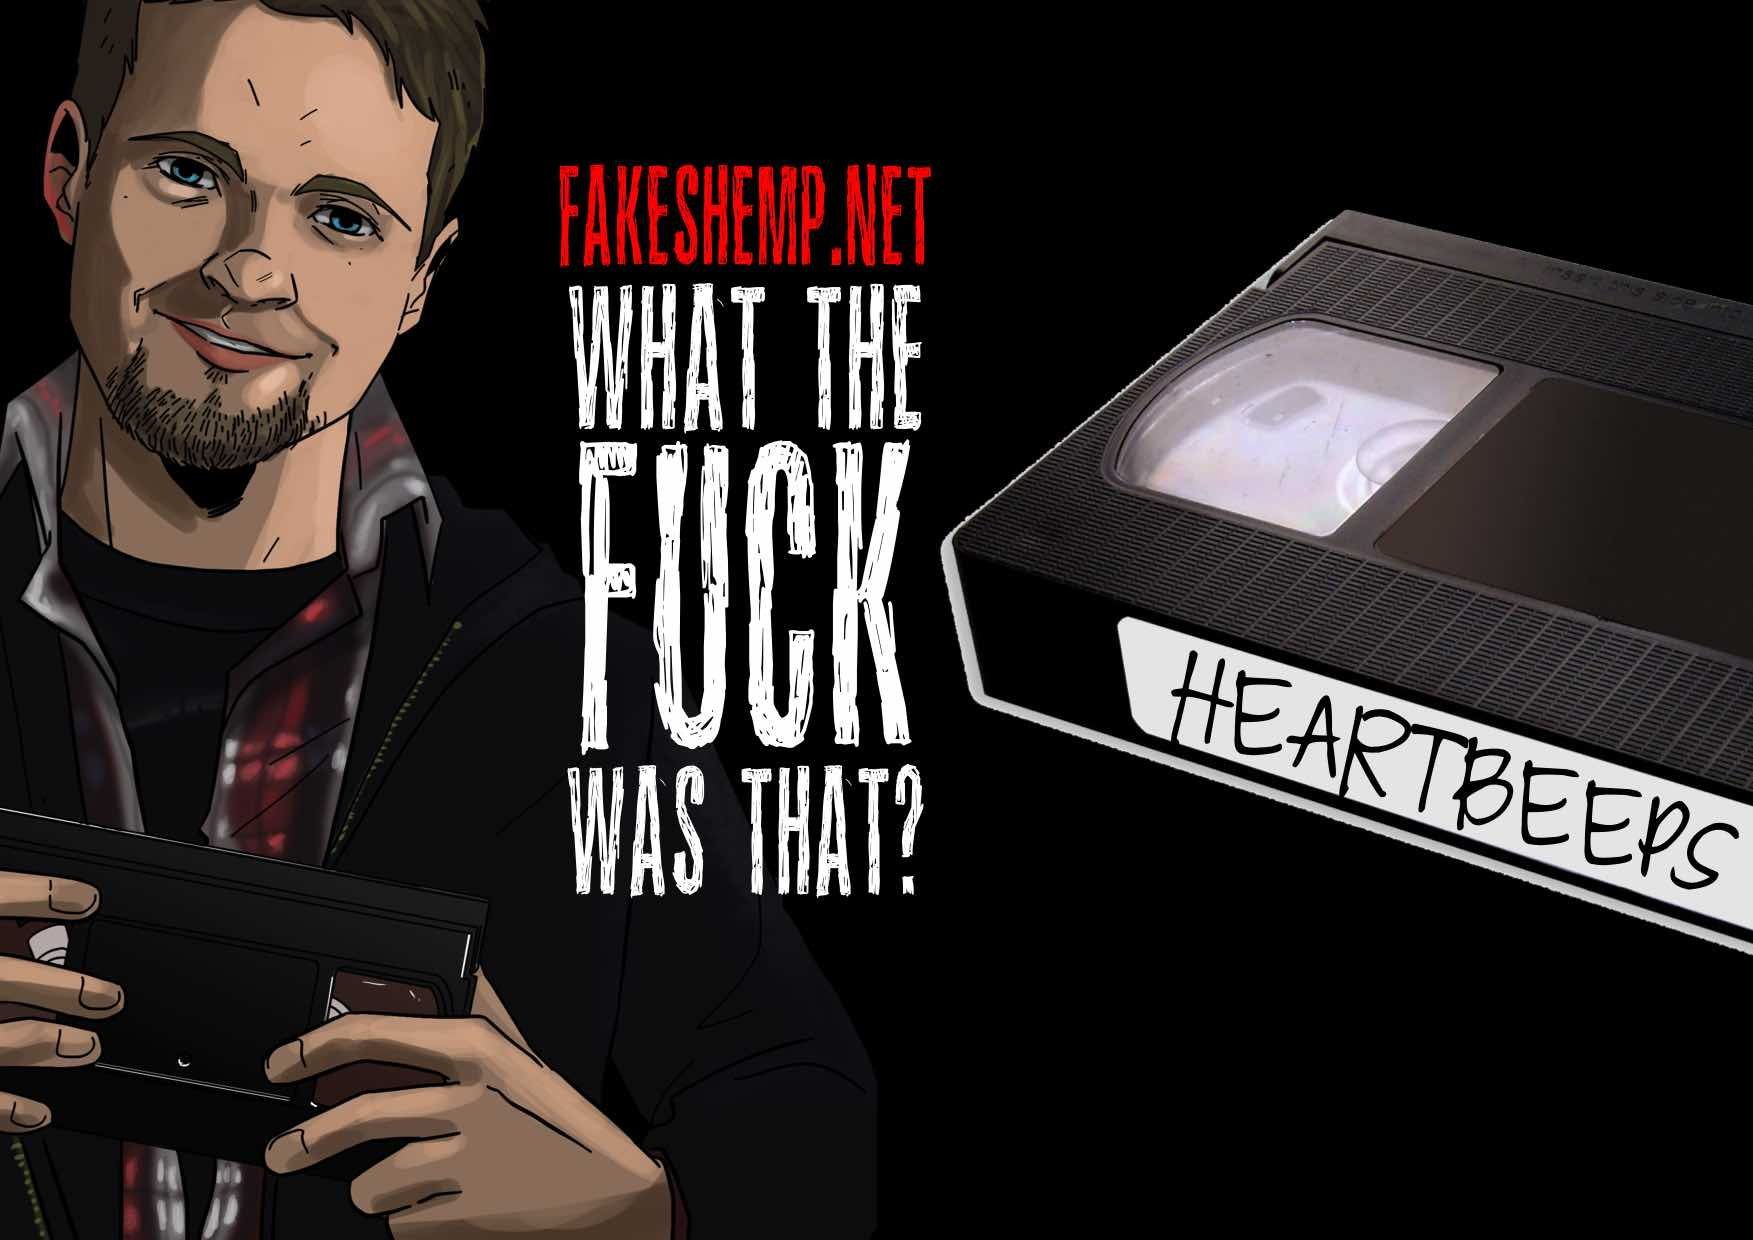 WTF Was That? - Heartbeeps